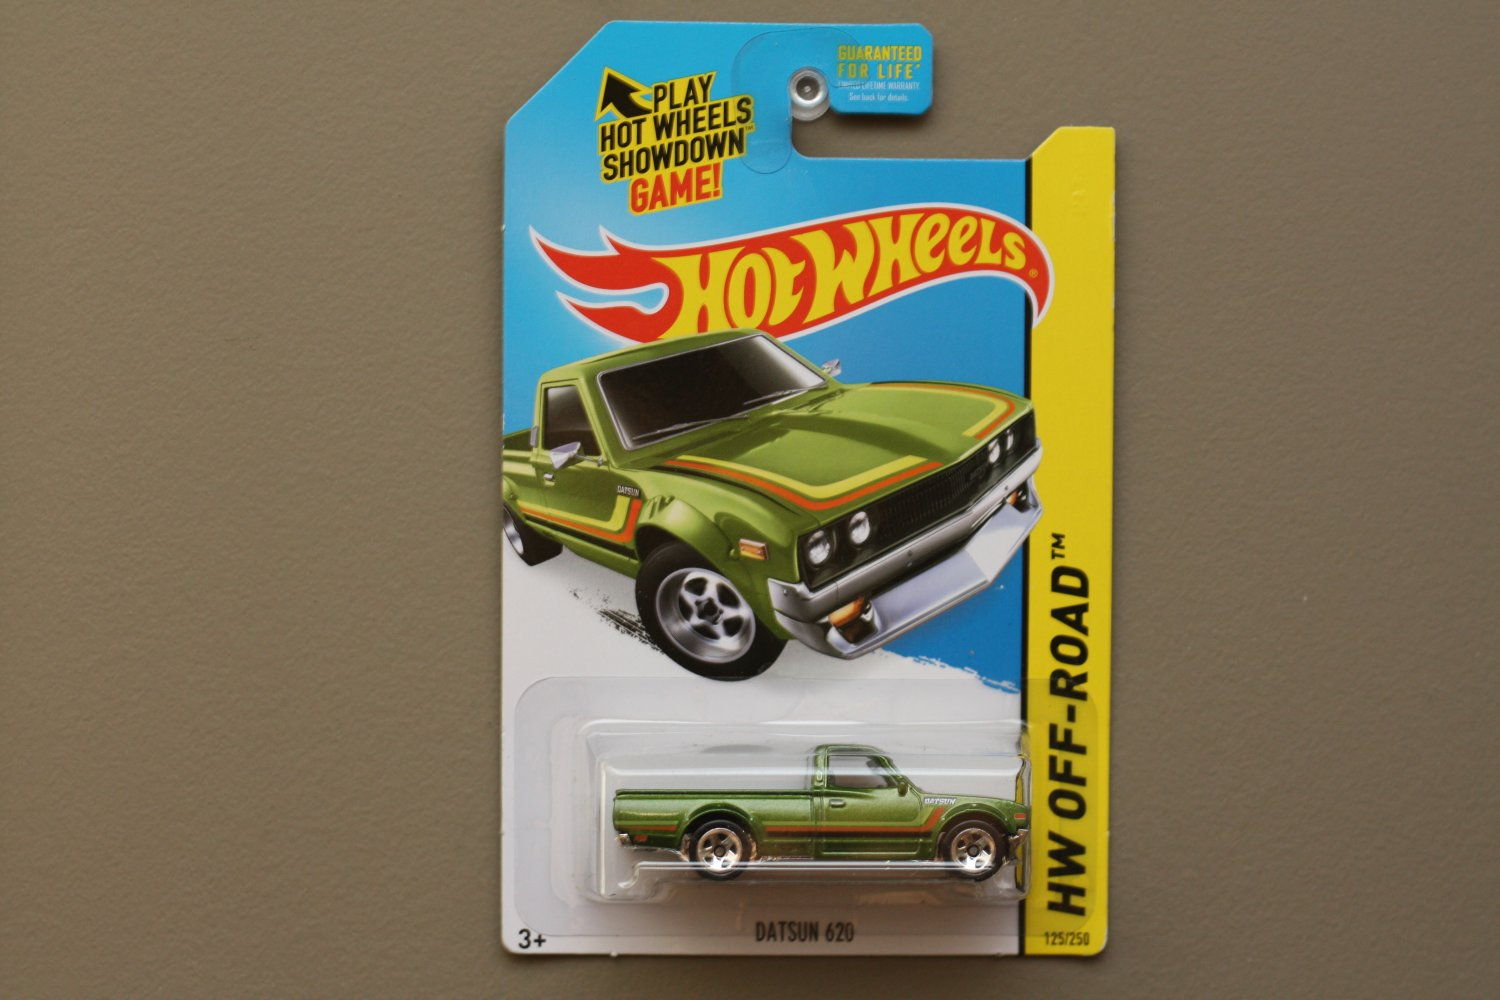 Hot Wheels 2015 HW Off-Road Datsun 620 (green)